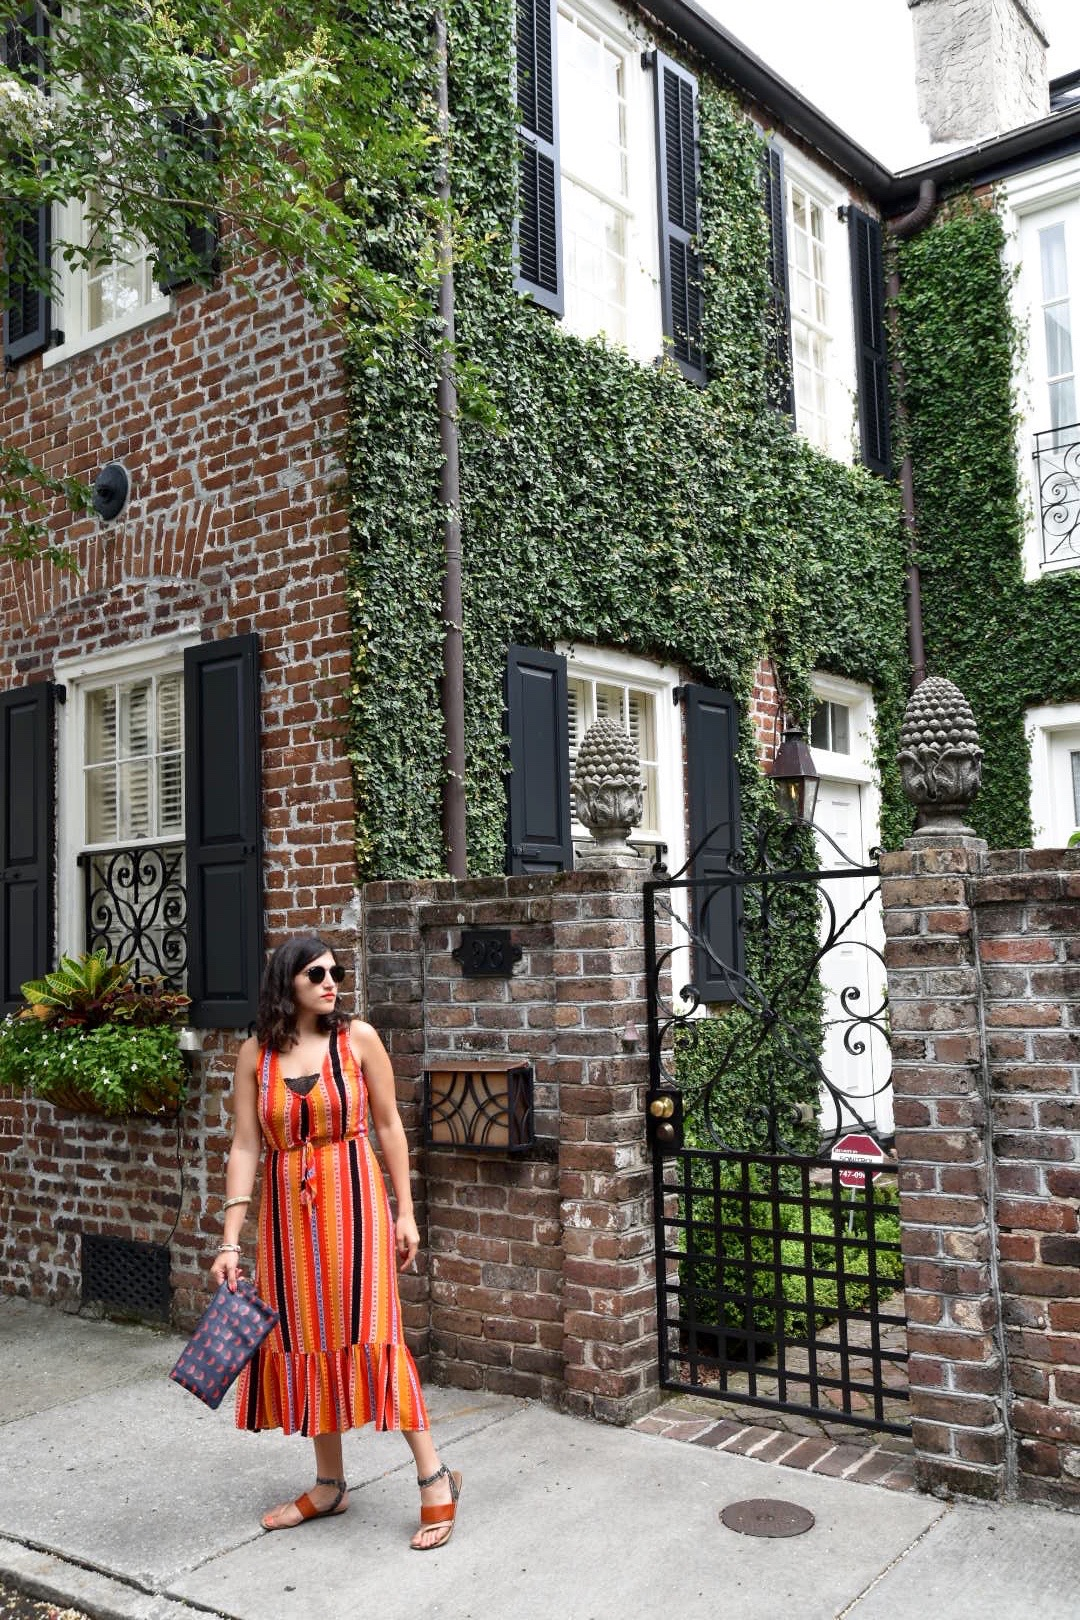 Aya wearing Elsa Fine dress Charleston SC in front of building covered in greenery